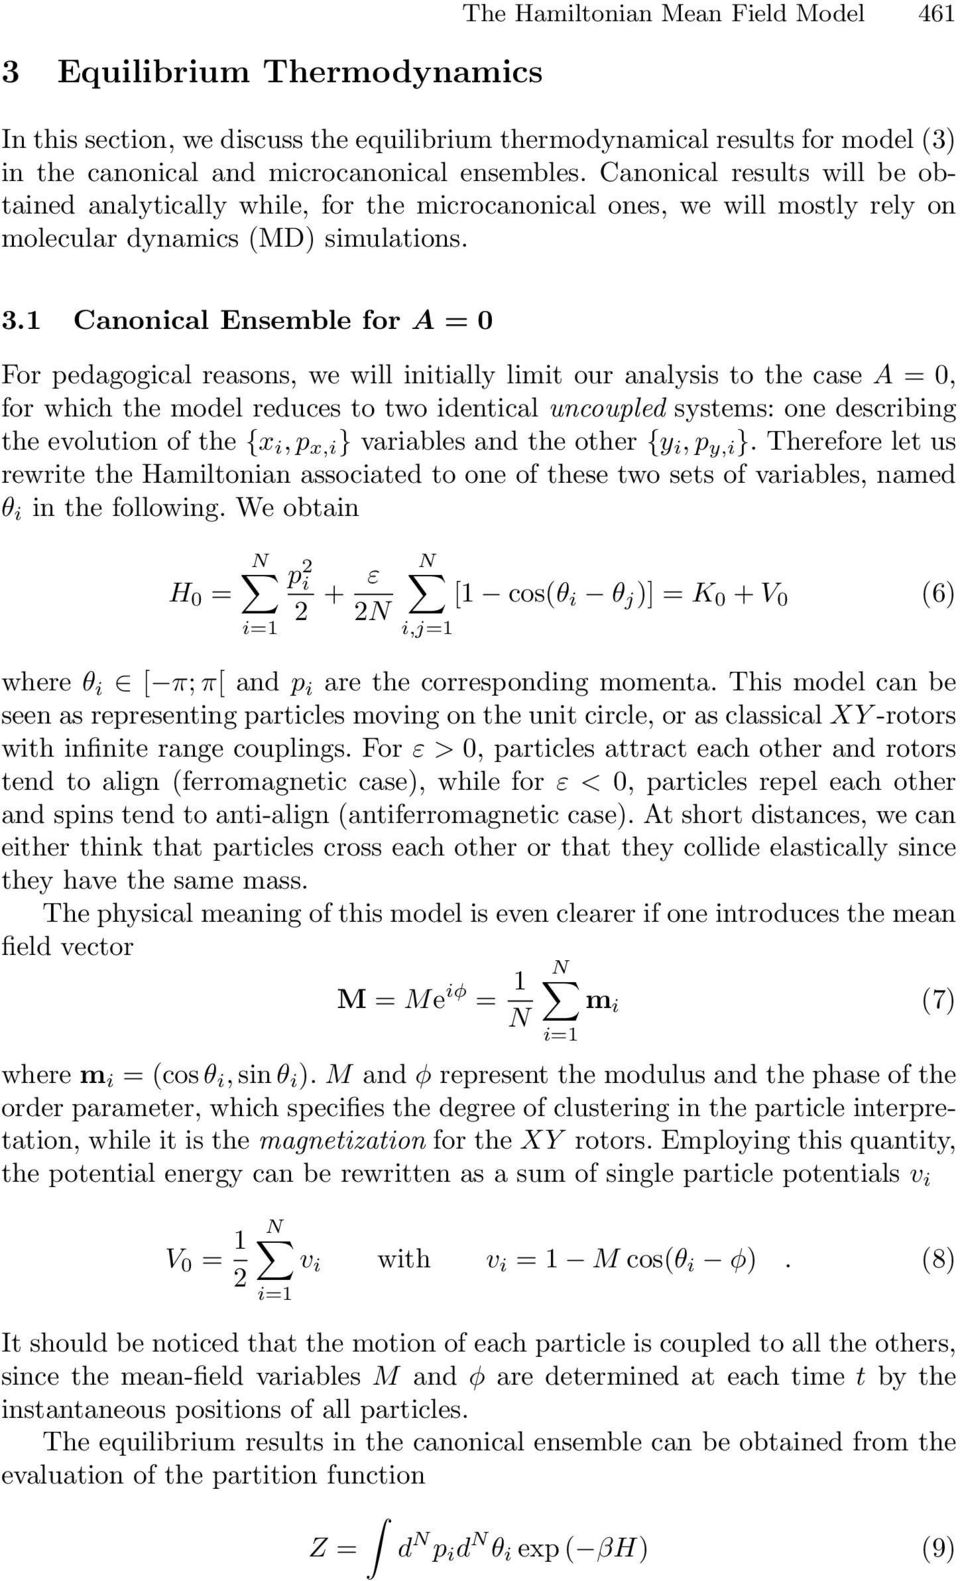 1 Canonical Ensemble for A = 0 For pedagogical reasons, we will initially limit our analysis to the case A =0, for which the model reduces to two identical uncoupled systems: one describing the